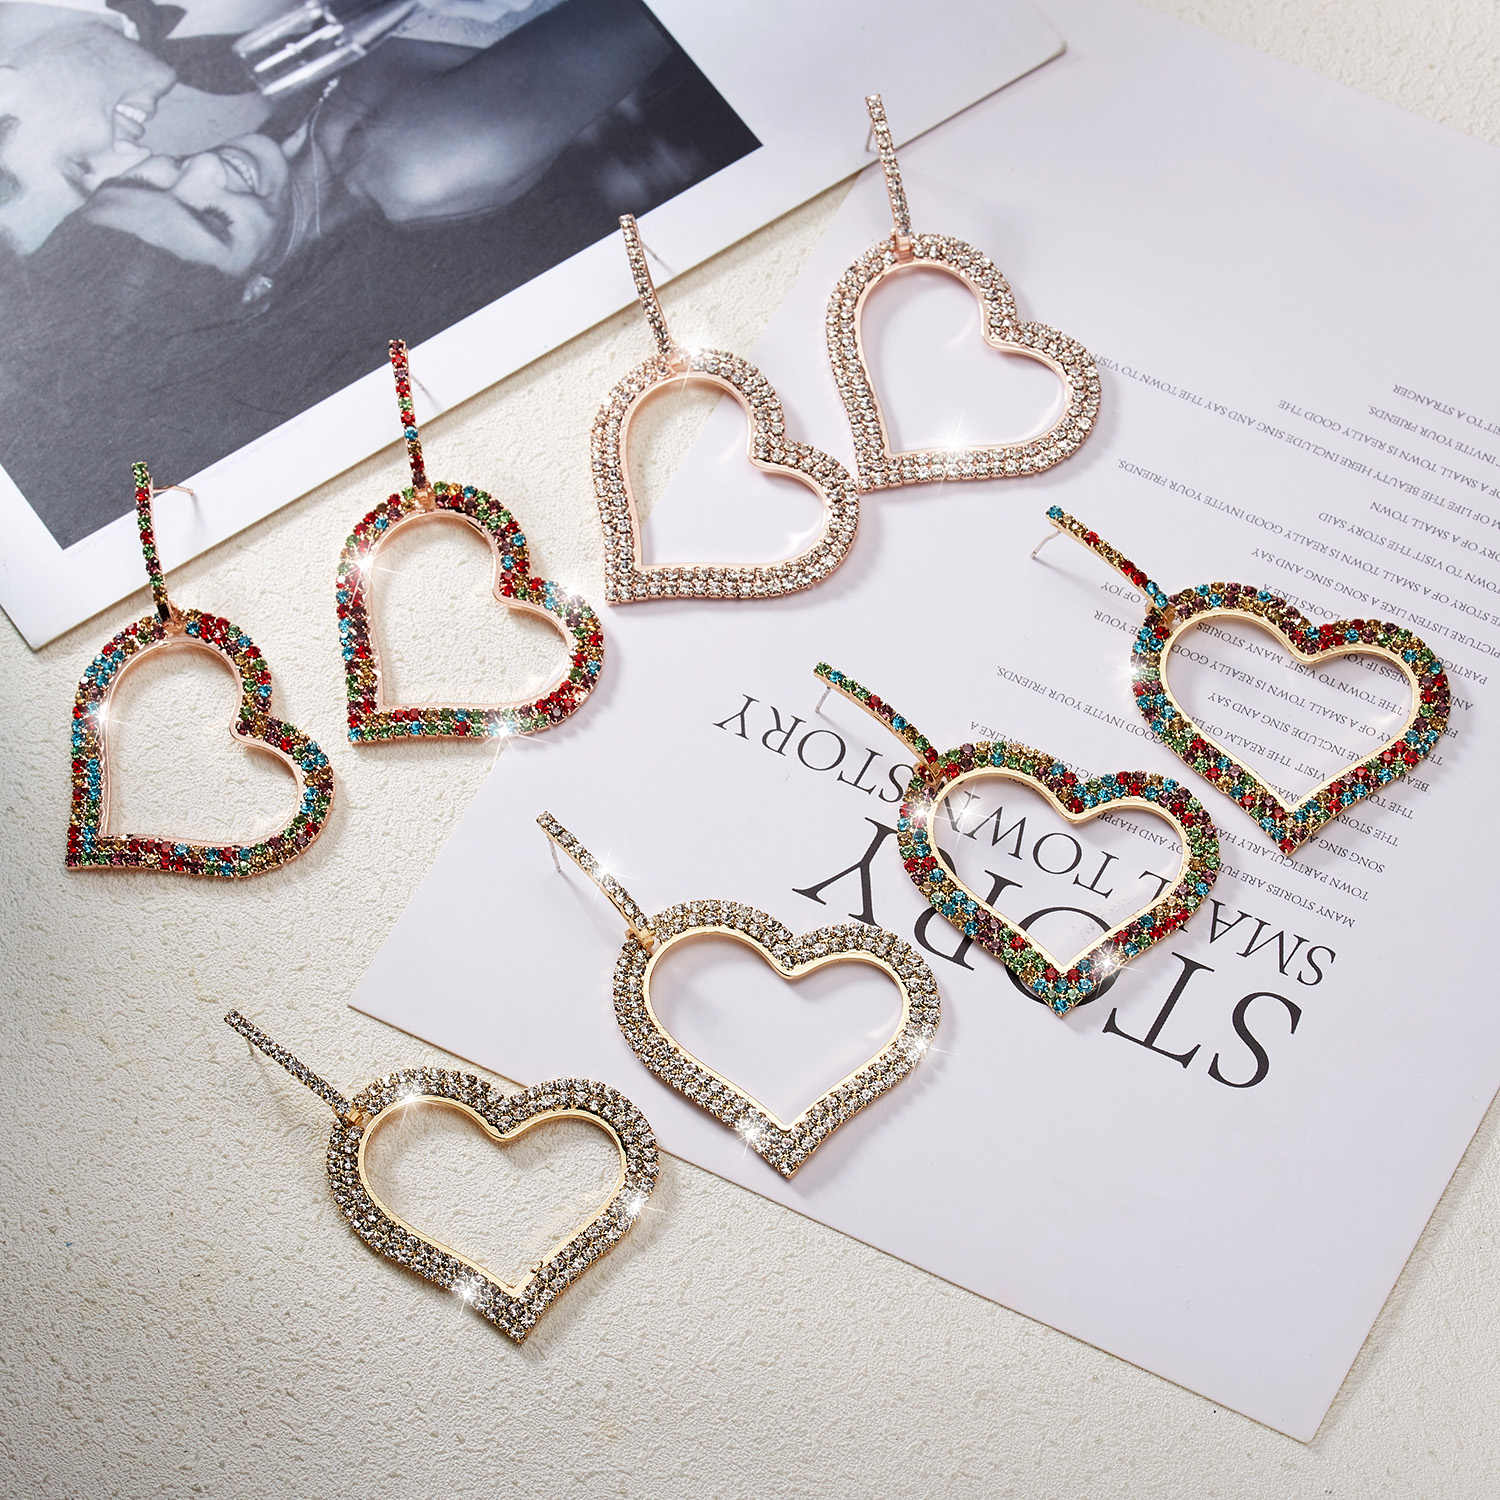 Belleper New Fashion Love Heart Female Earrings Love Big Heart Empty Earrings Drop Earrings Brincos Korean Style Ear Jewelry